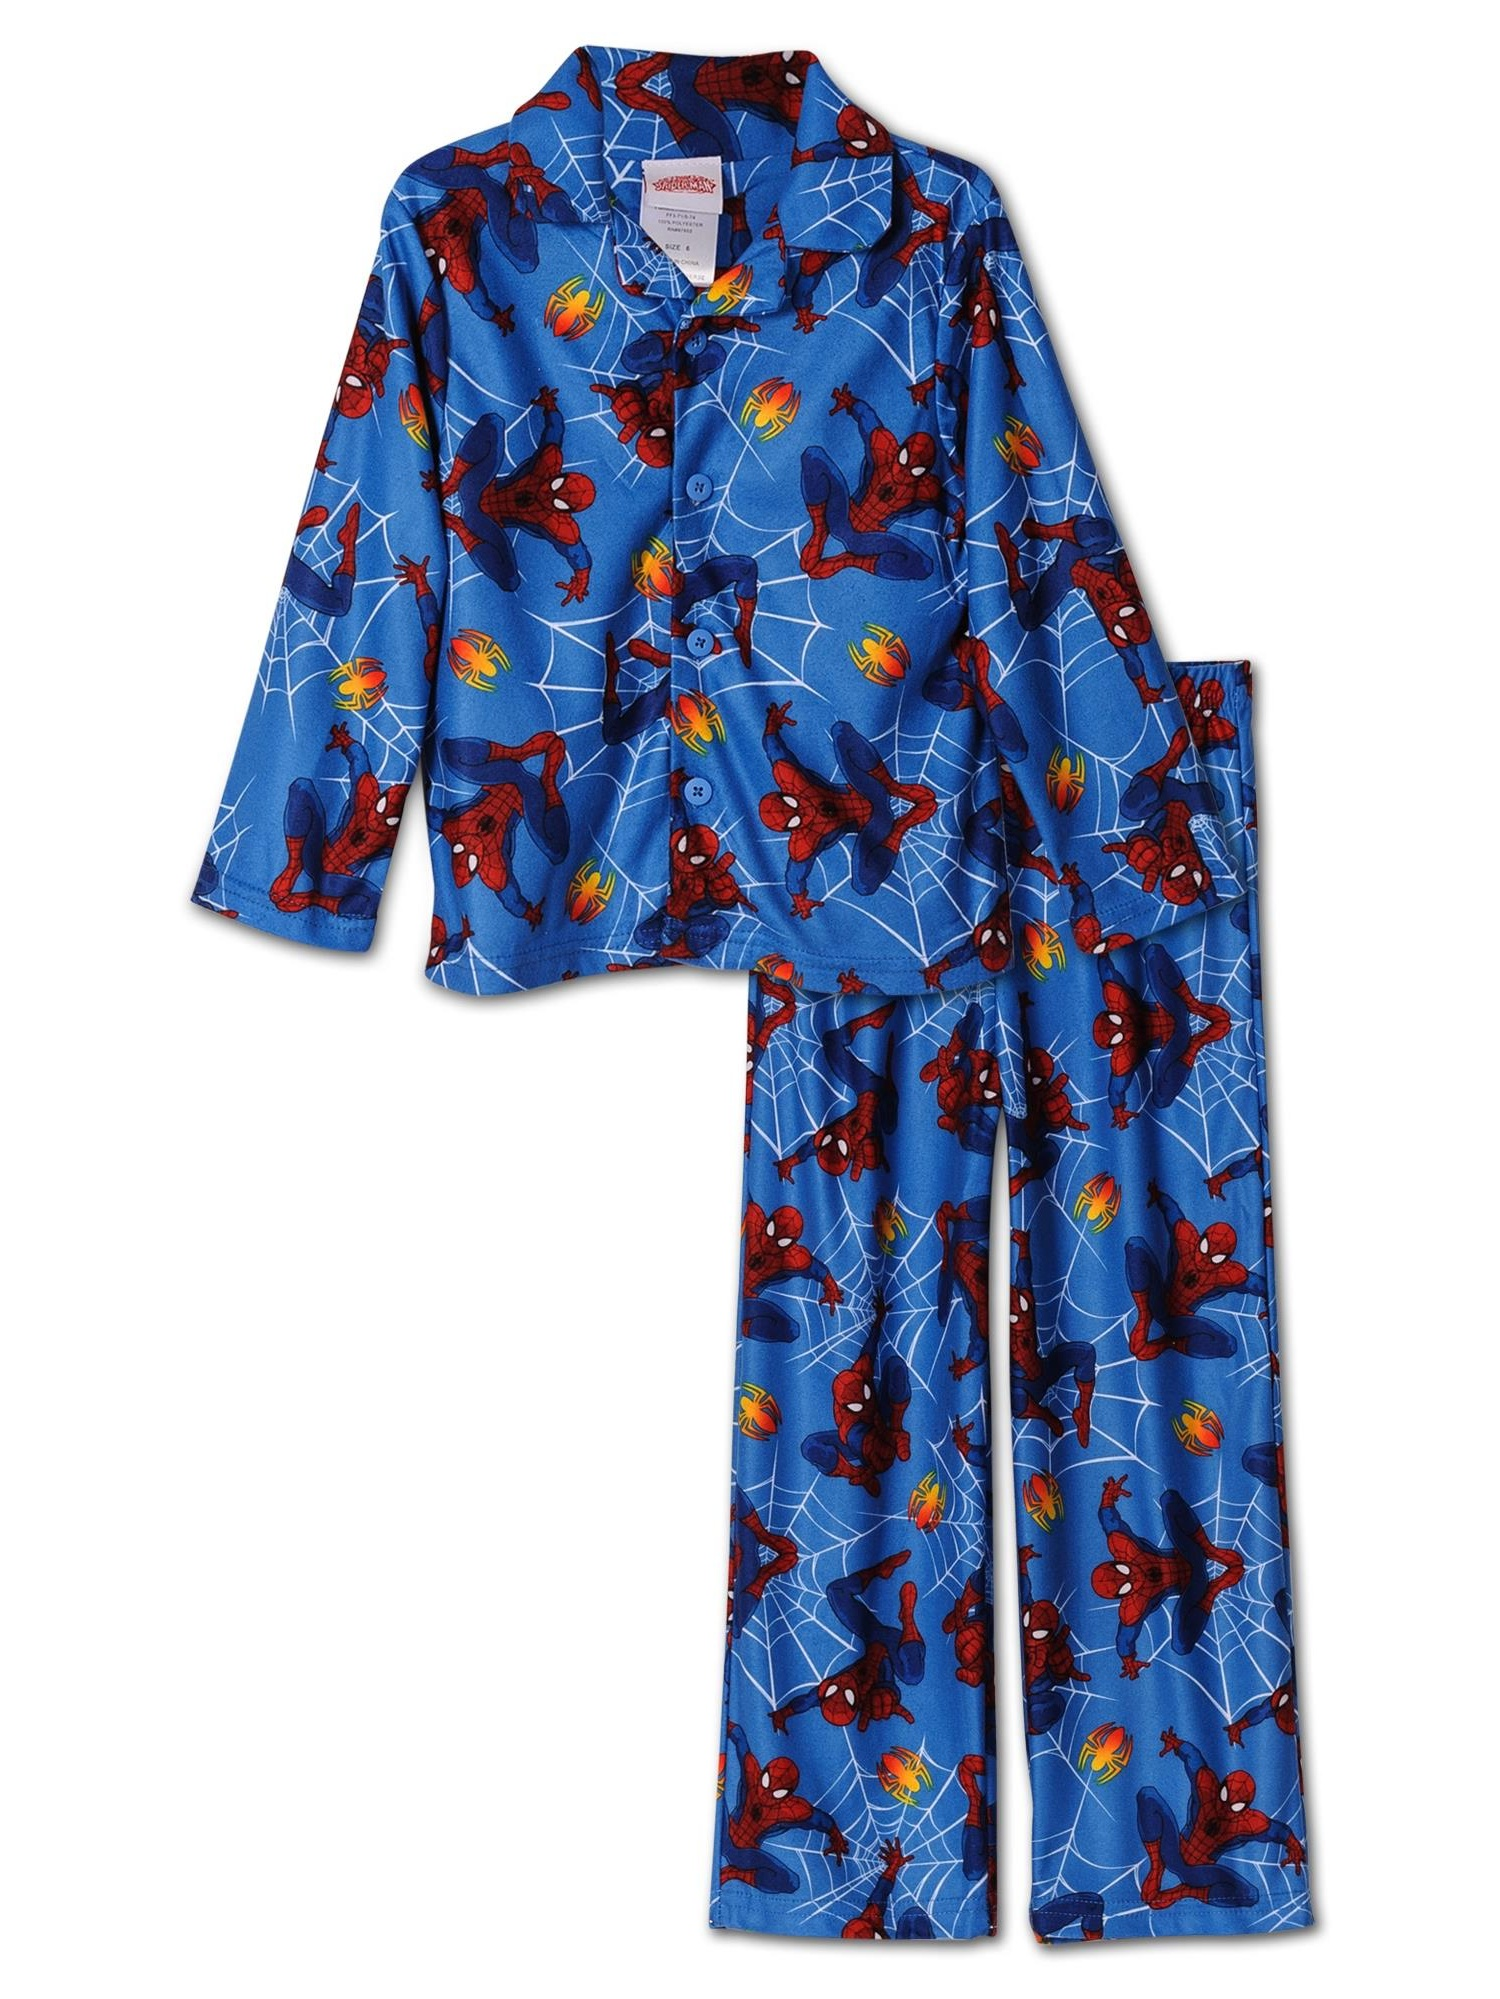 Marvel Big Boys' Two-Piece Spider-Man Print Button-Front Shirt with Pant Pajama Set, Blue, Size: 10